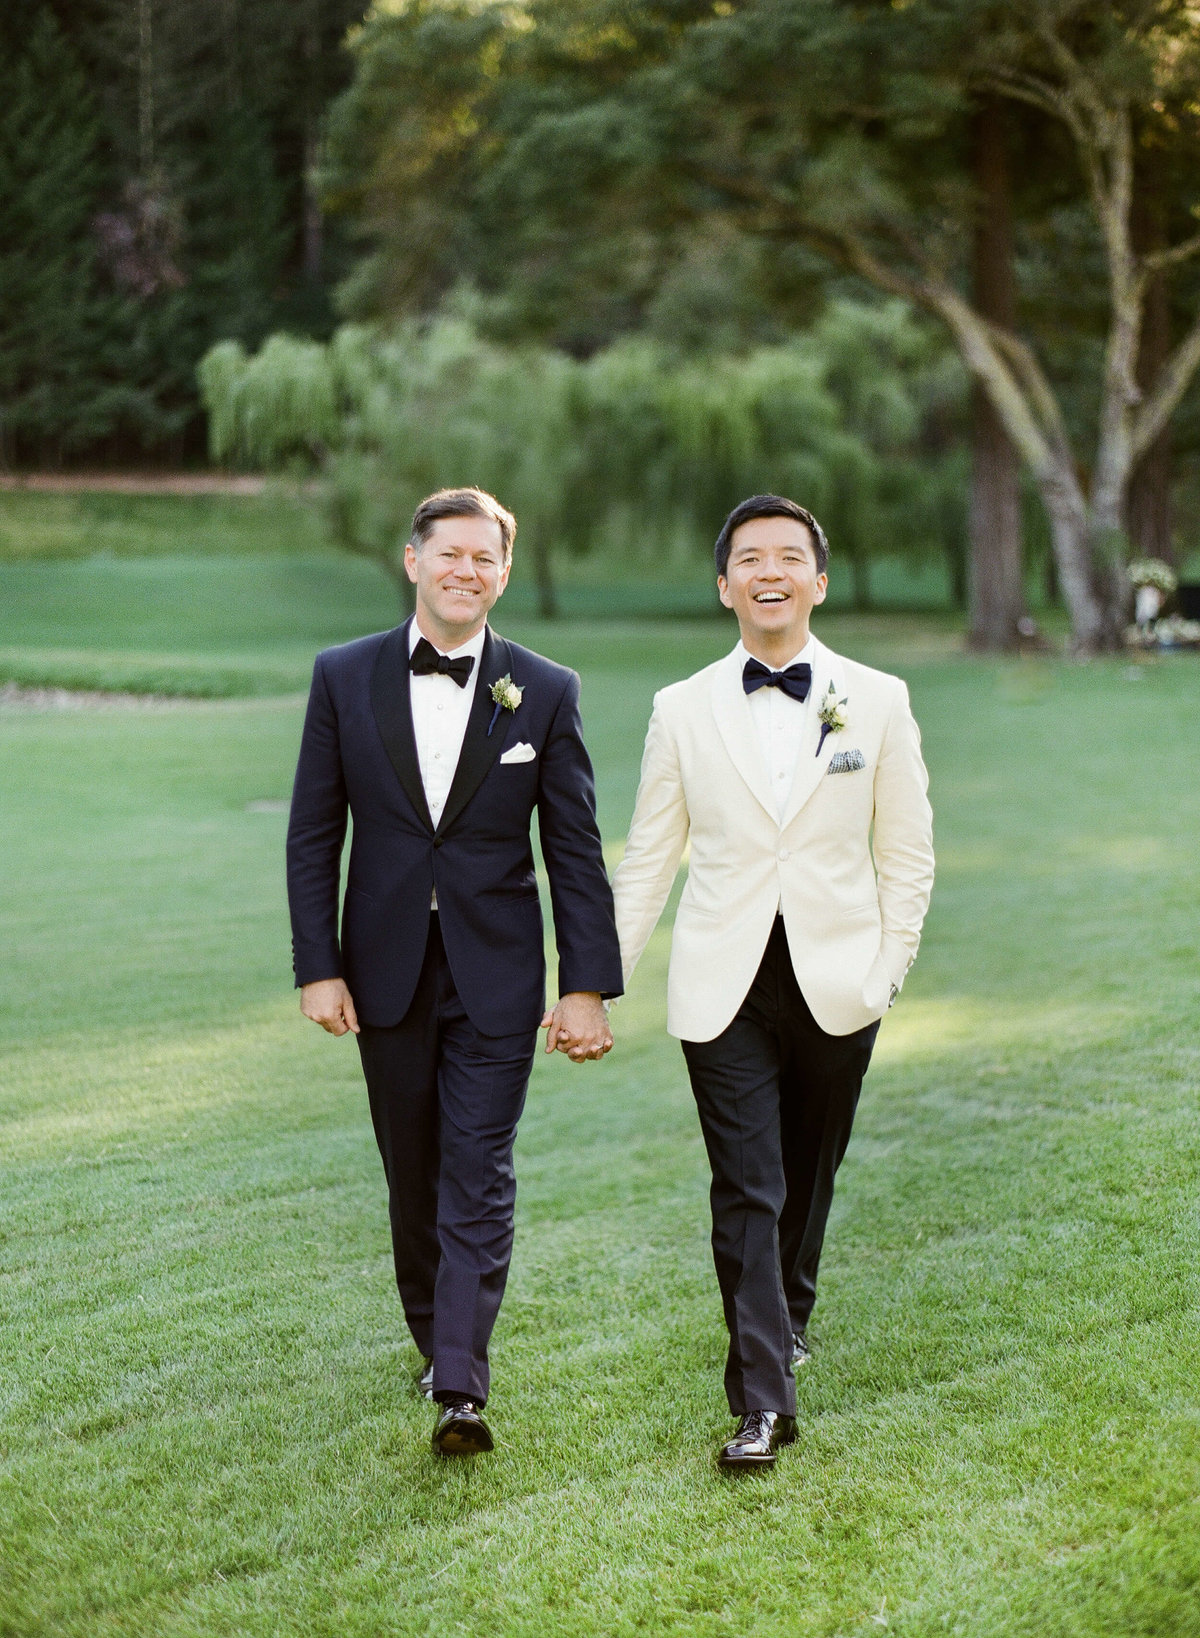 21-KTMerry-weddings-two-grooms-portrait-NapaValley